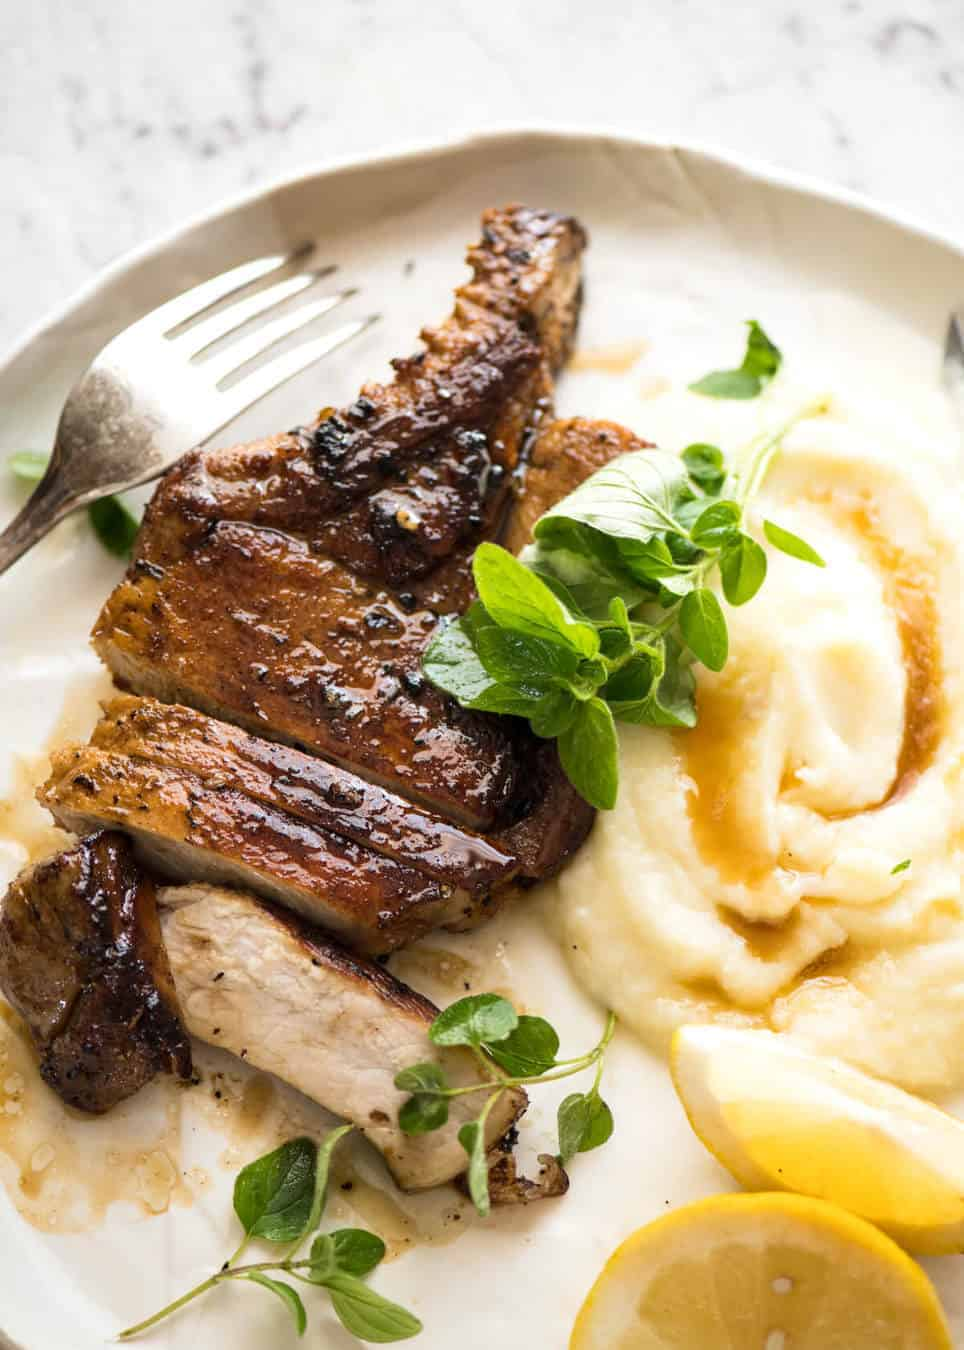 Nothing adds flavour to a pork chop like a good marinade! Lemon Garlic Marinated Pork Chops - www.recipetineats.com